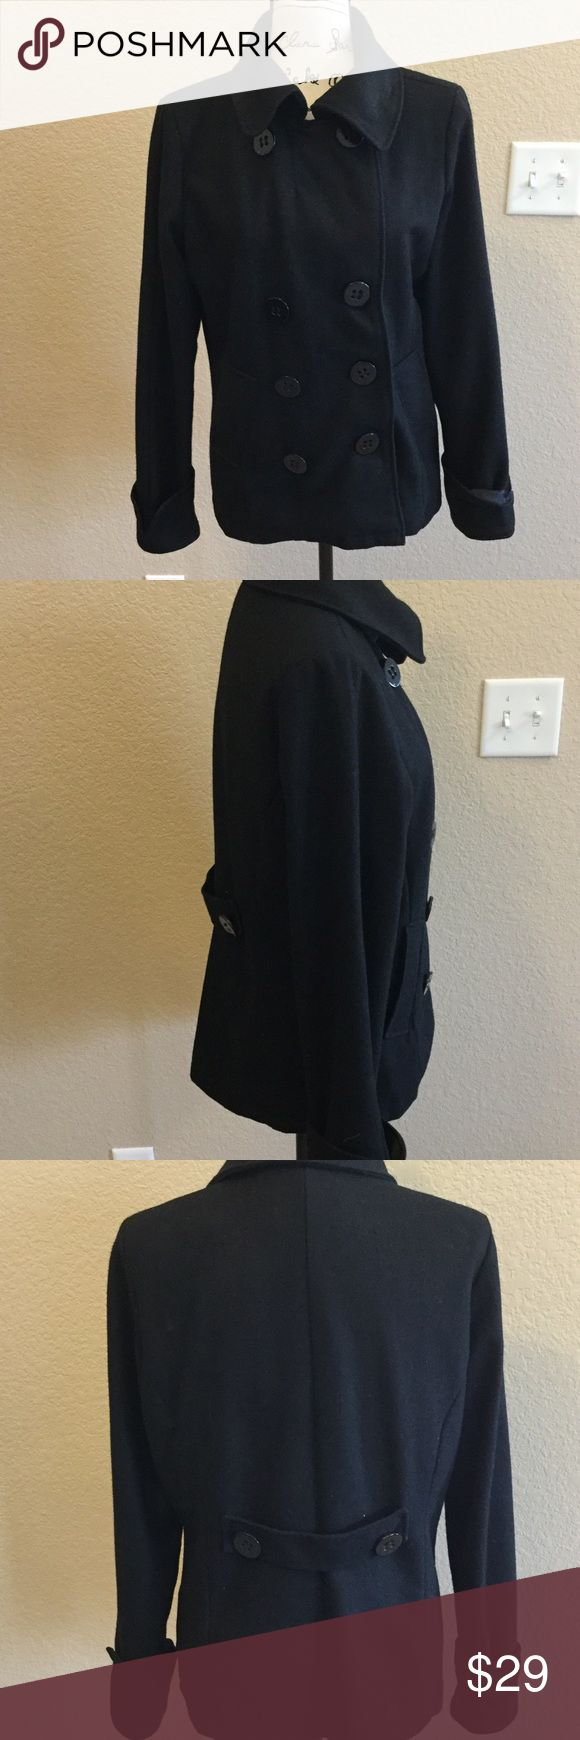 Black pea coat In great condition! Charlotte Russe Jackets & Coats Pea Coats